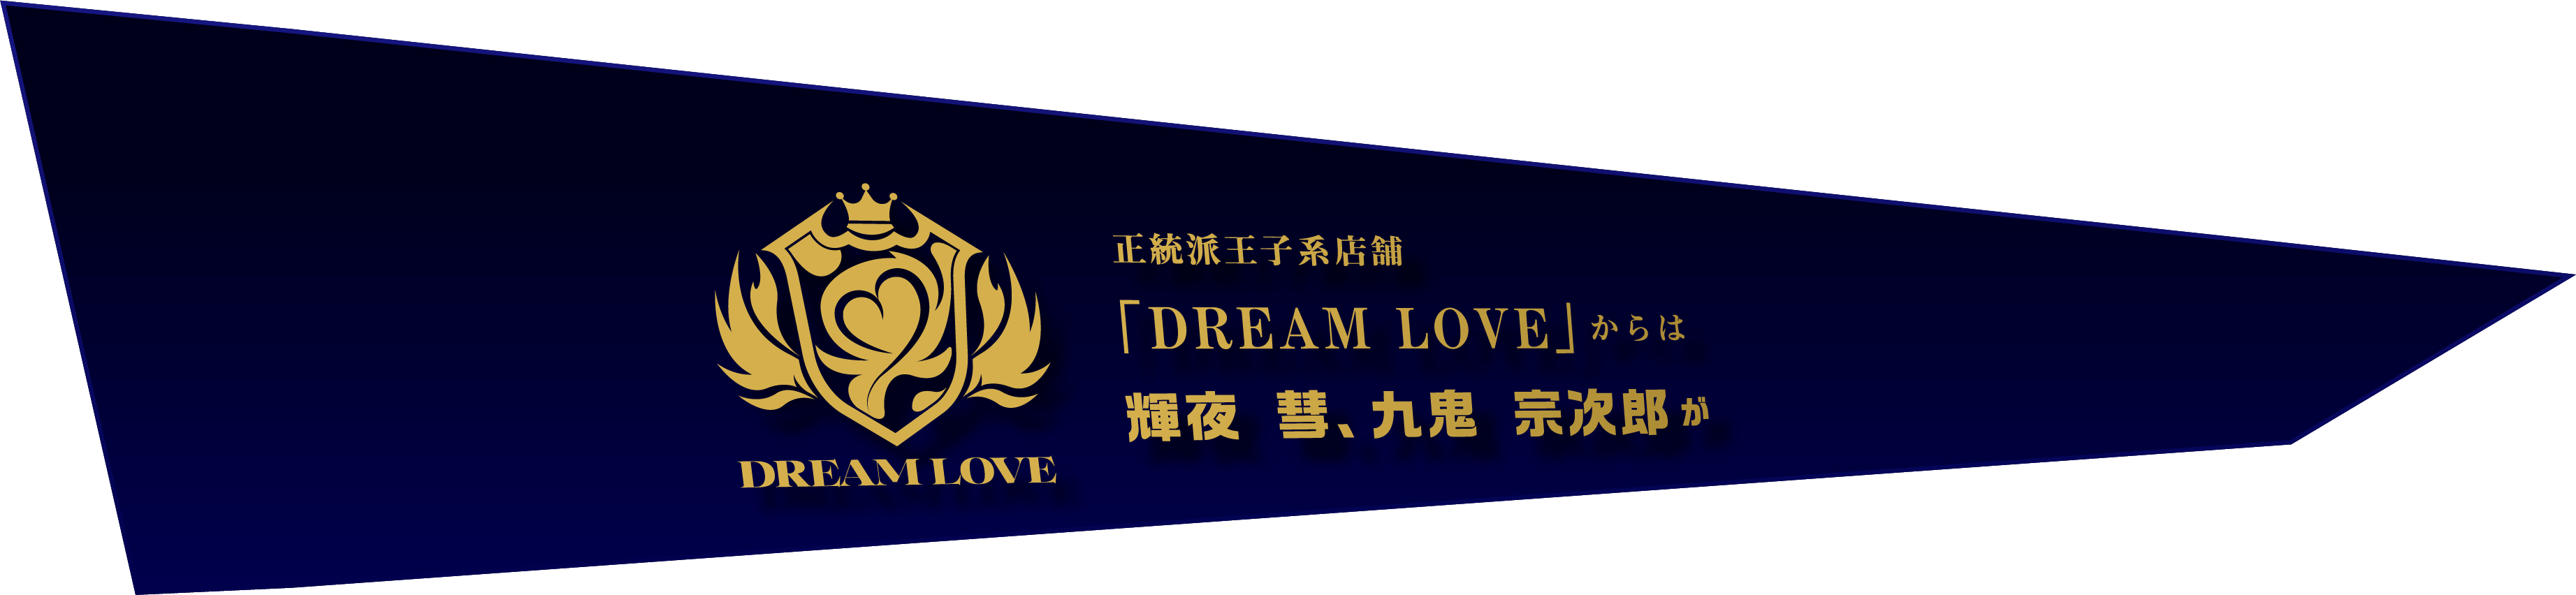 DREAM LOVE